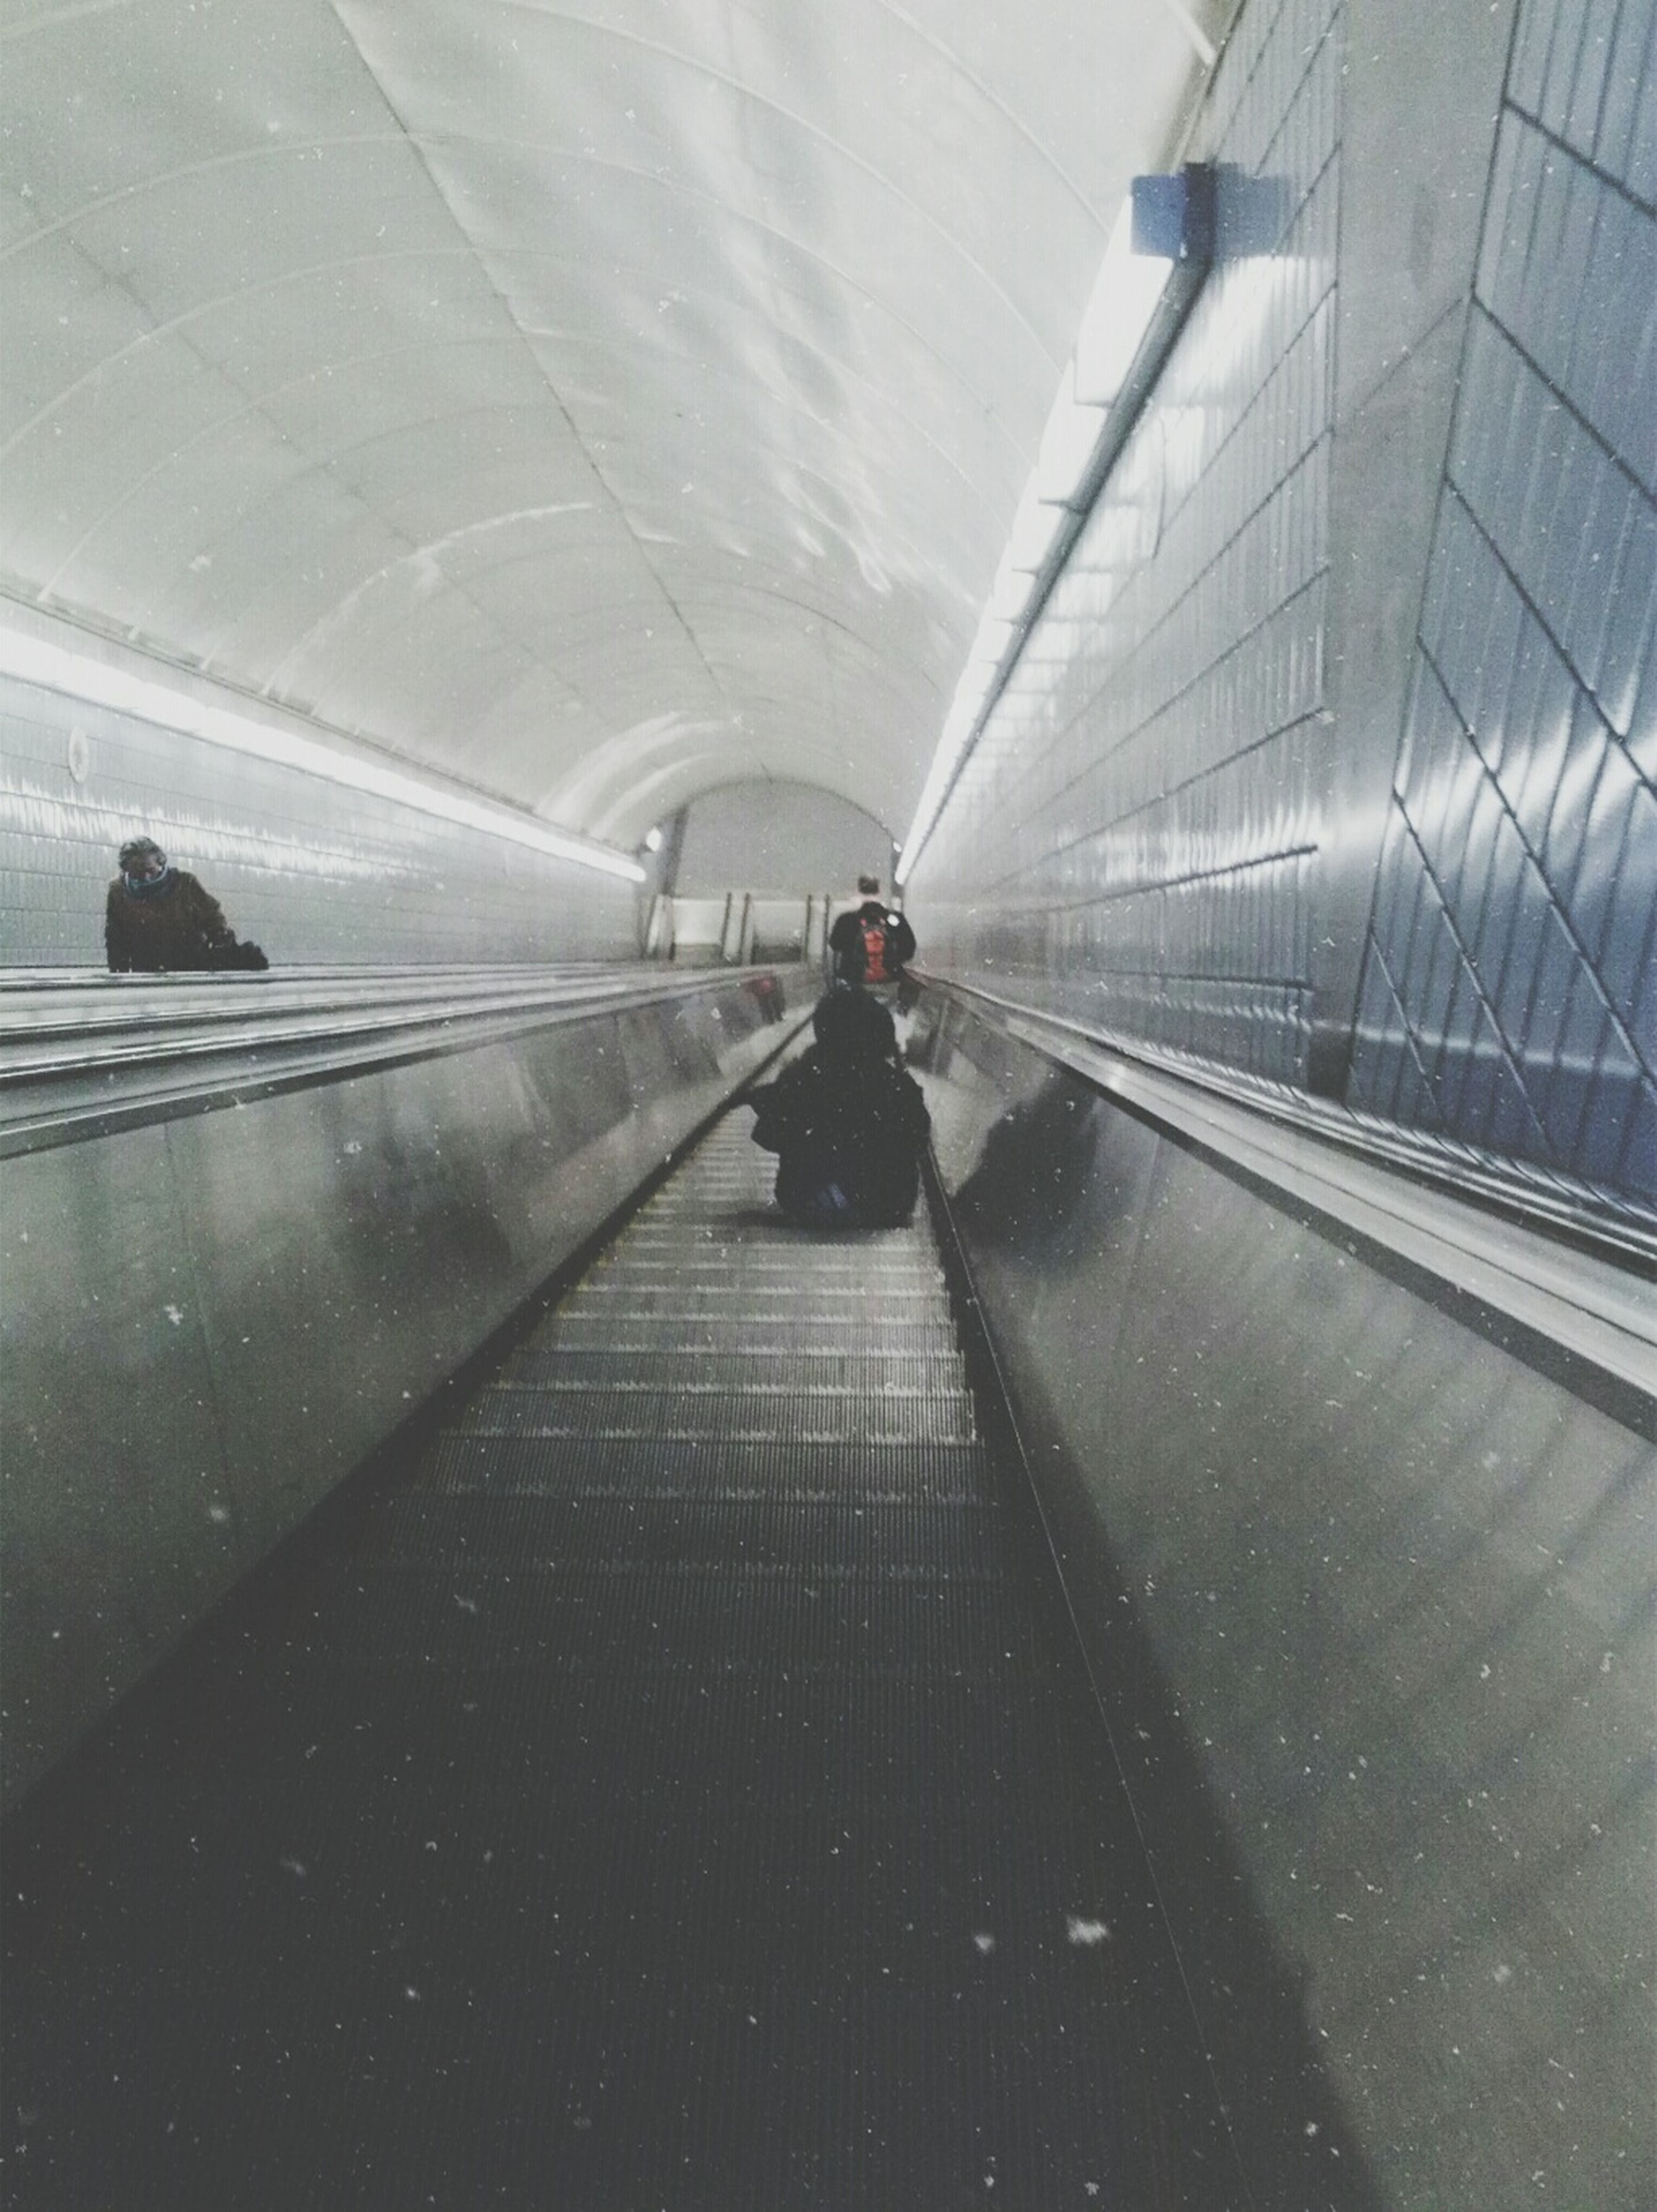 lifestyles, indoors, architecture, full length, walking, built structure, men, the way forward, rear view, tunnel, leisure activity, transportation, person, travel, standing, modern, city life, railing